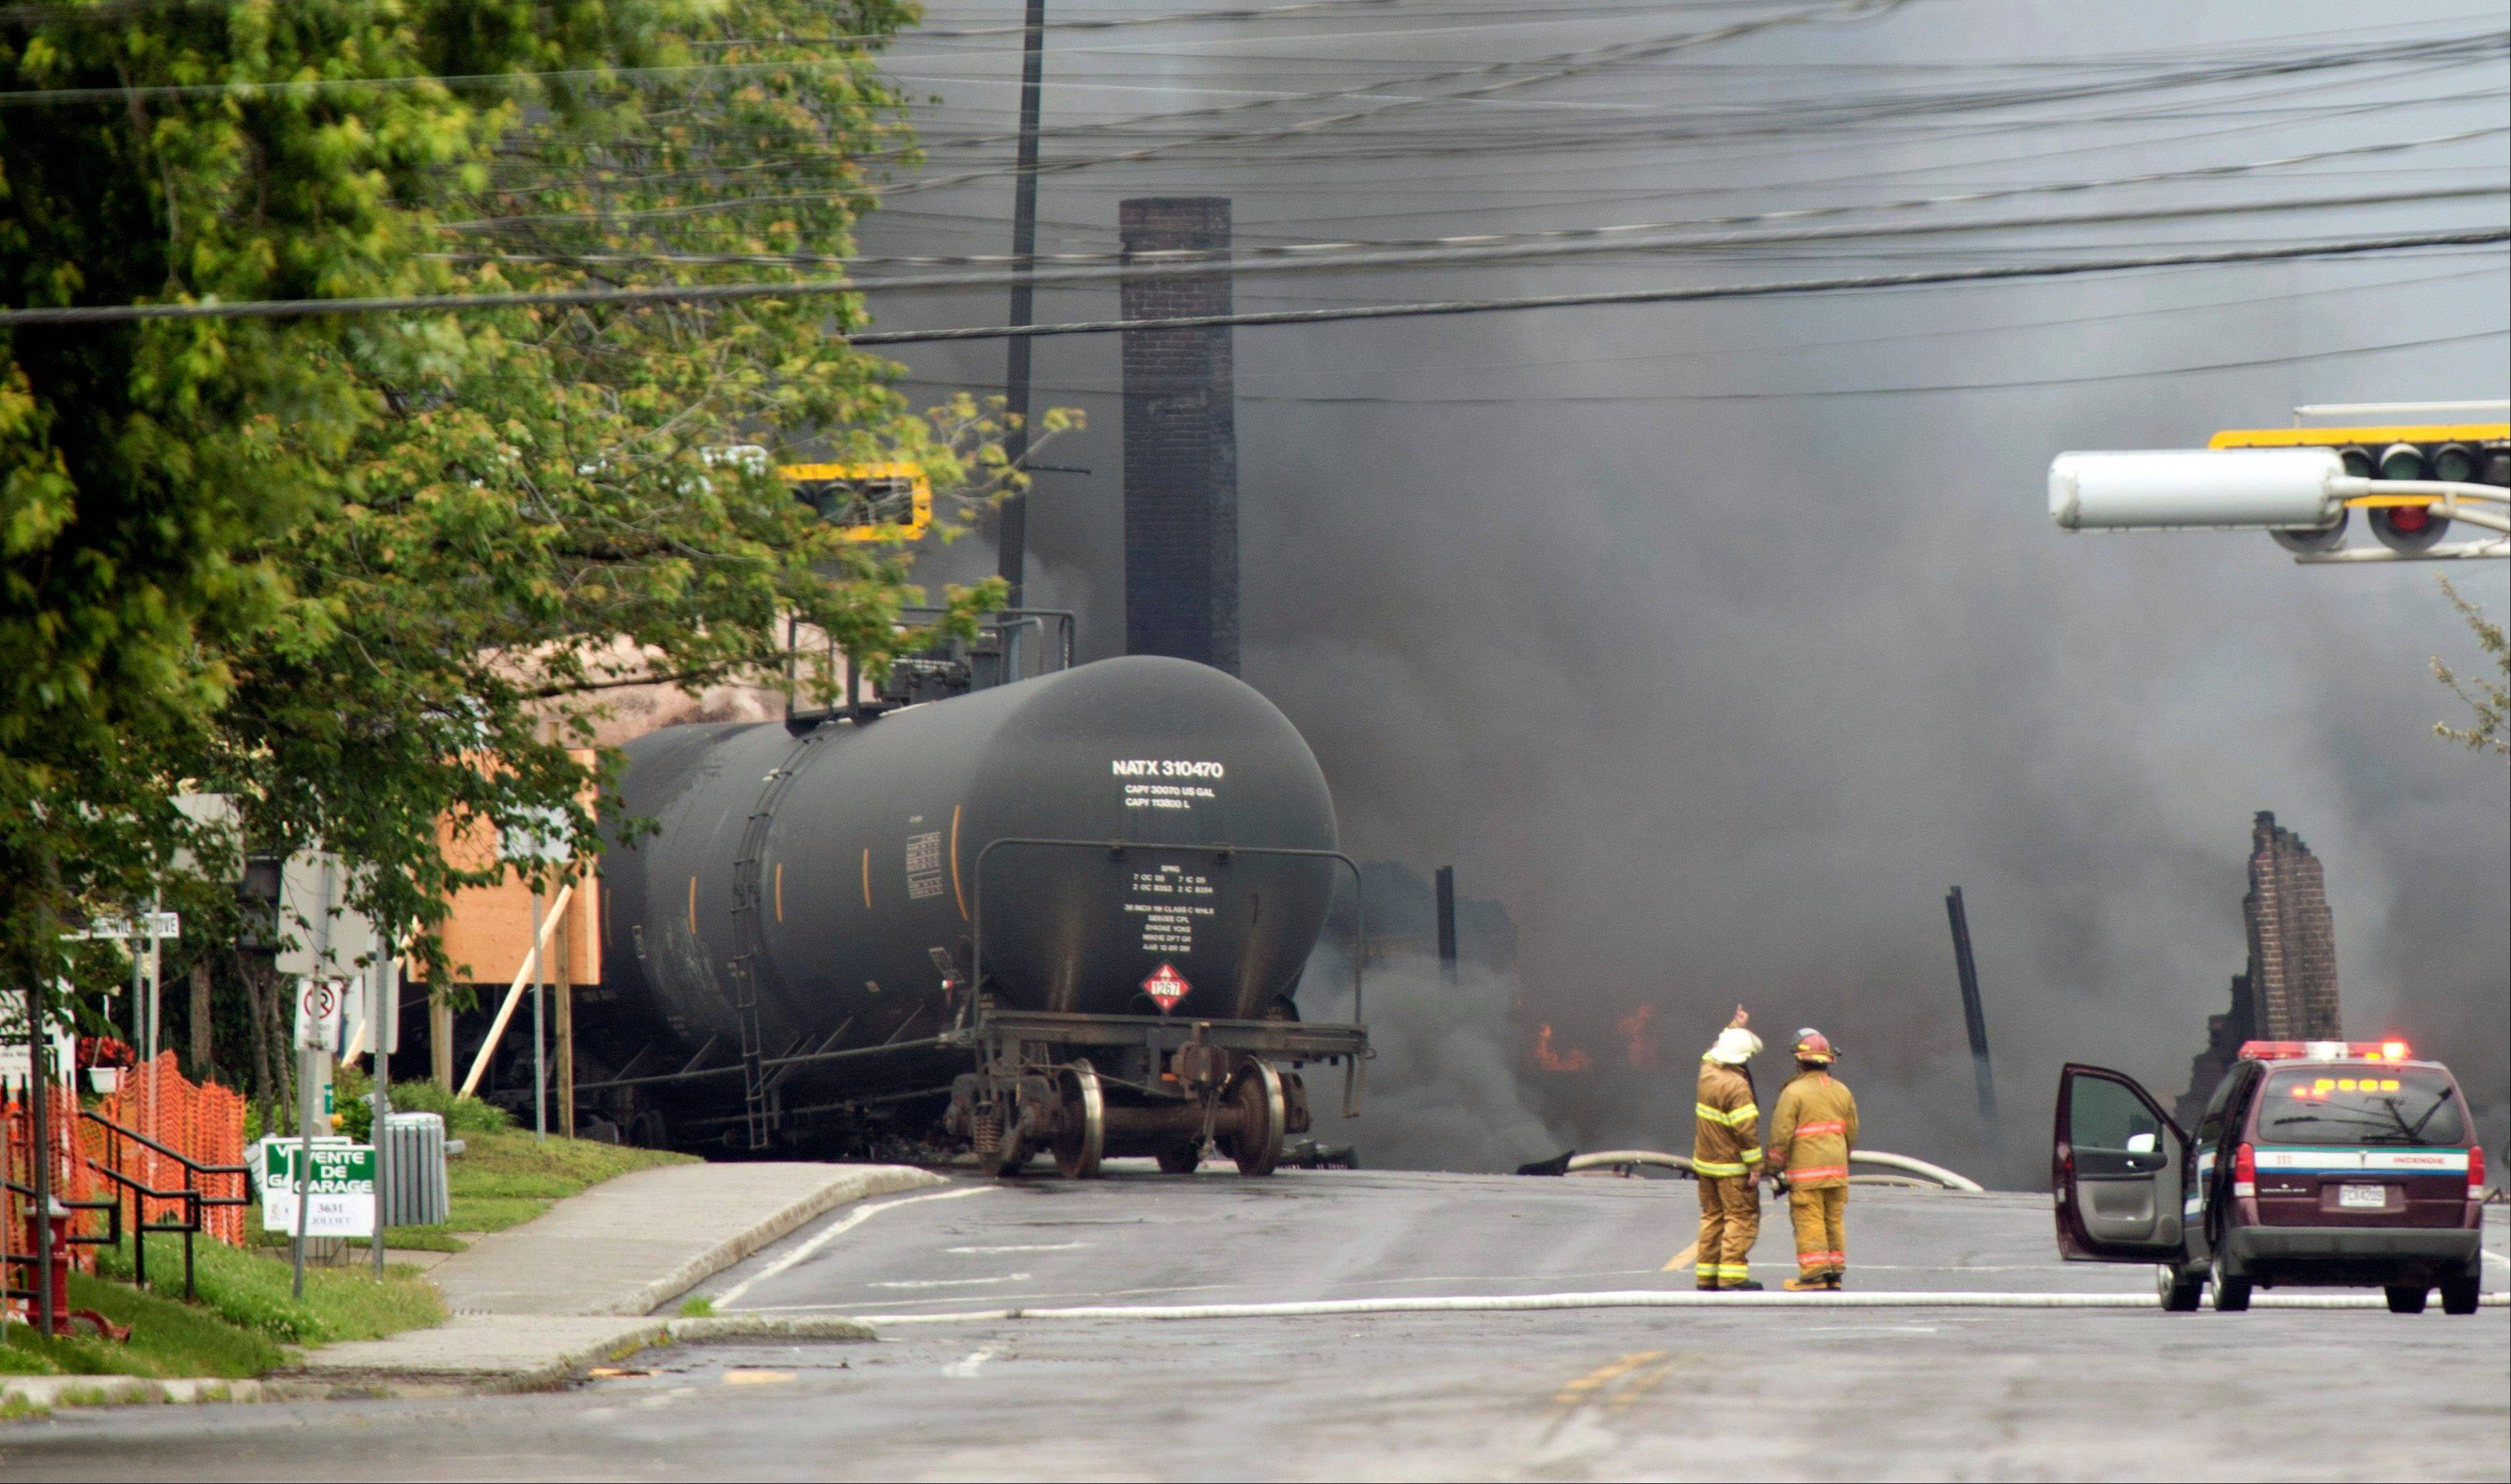 Smoke rises from railway cars that were carrying crude oil after derailing in downtown Lac Megantic, Quebec, Canada, Saturday, July 6. The derailment sparked several explosions and forced the evacuation of up to 1,000 people.